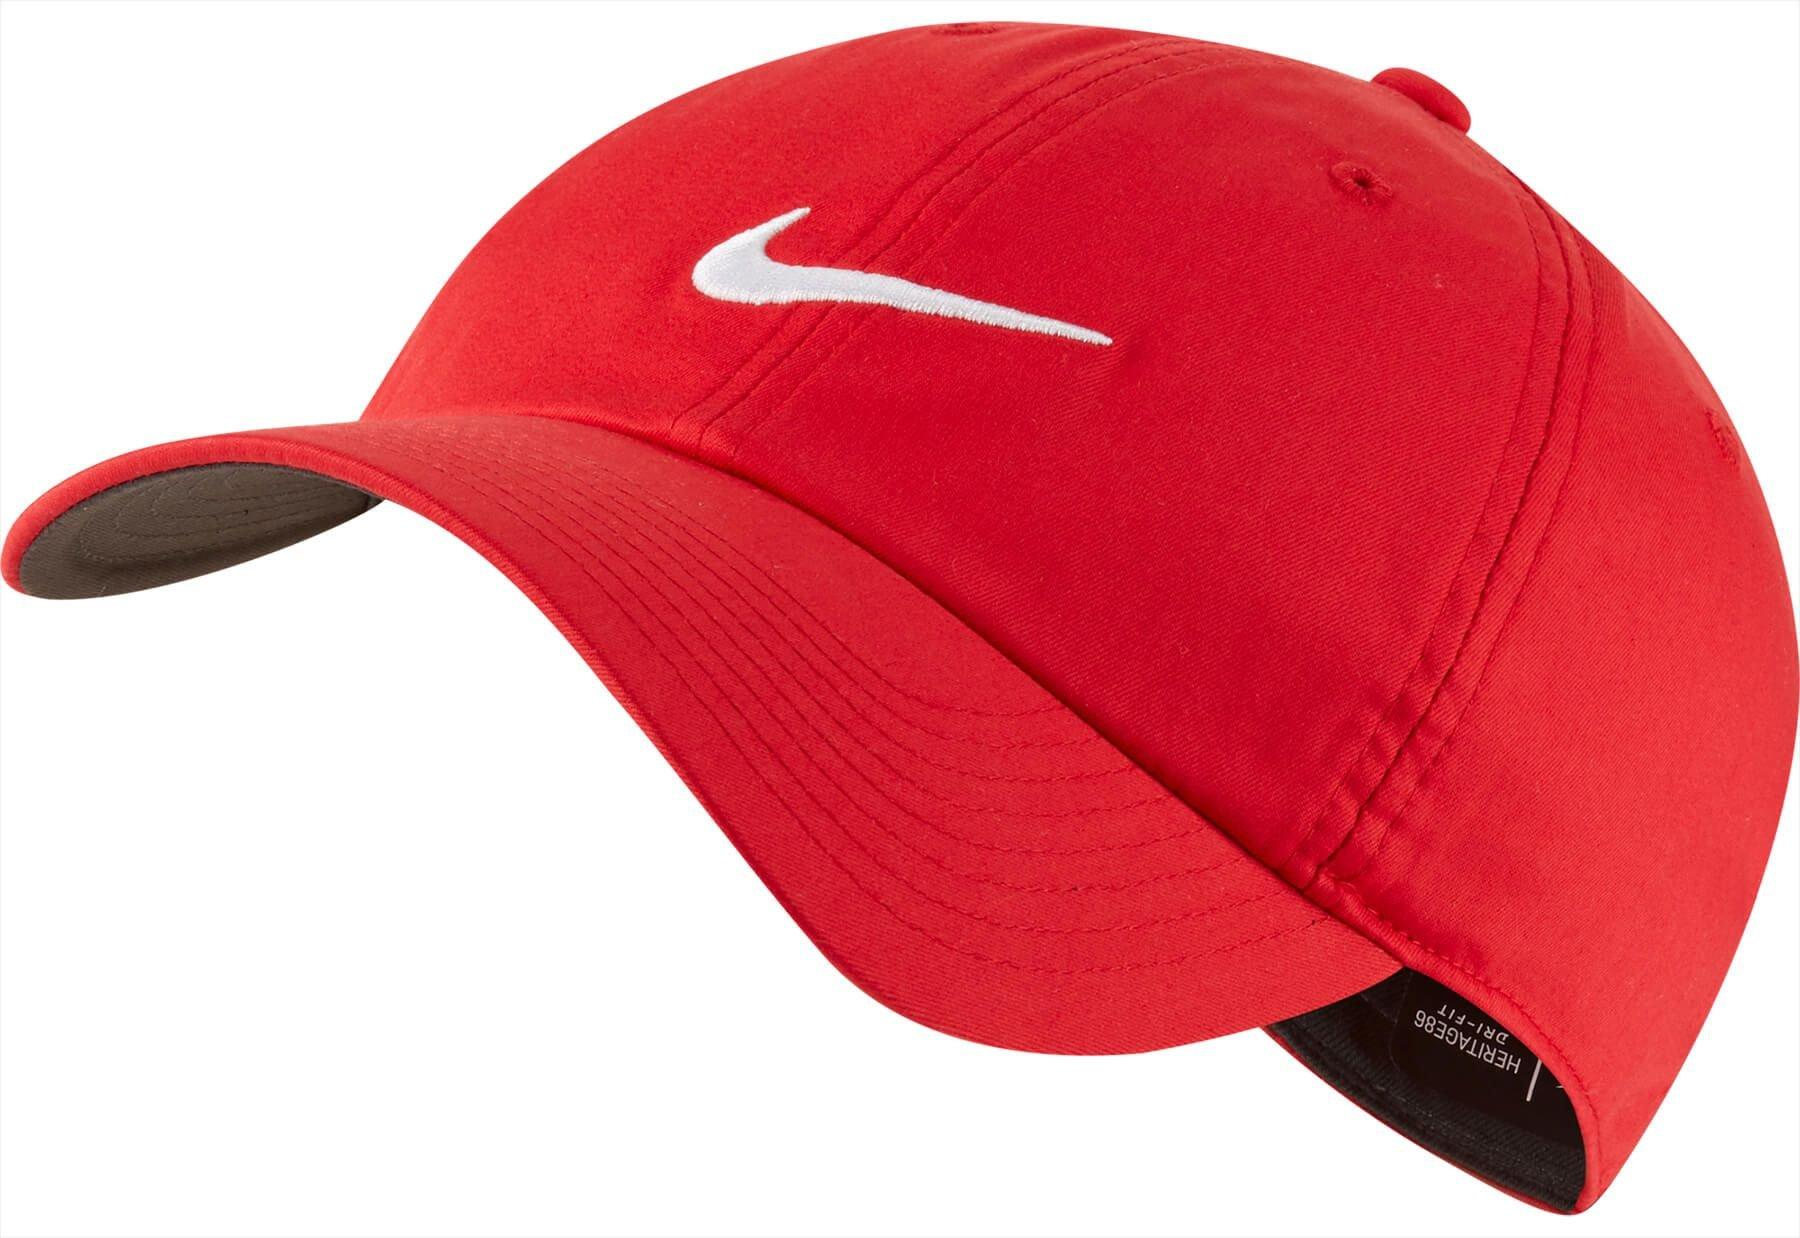 Opiáceo hacer clic Museo Guggenheim  Nike Heritage86 Golf Hat 2020 - Carl's Golfland